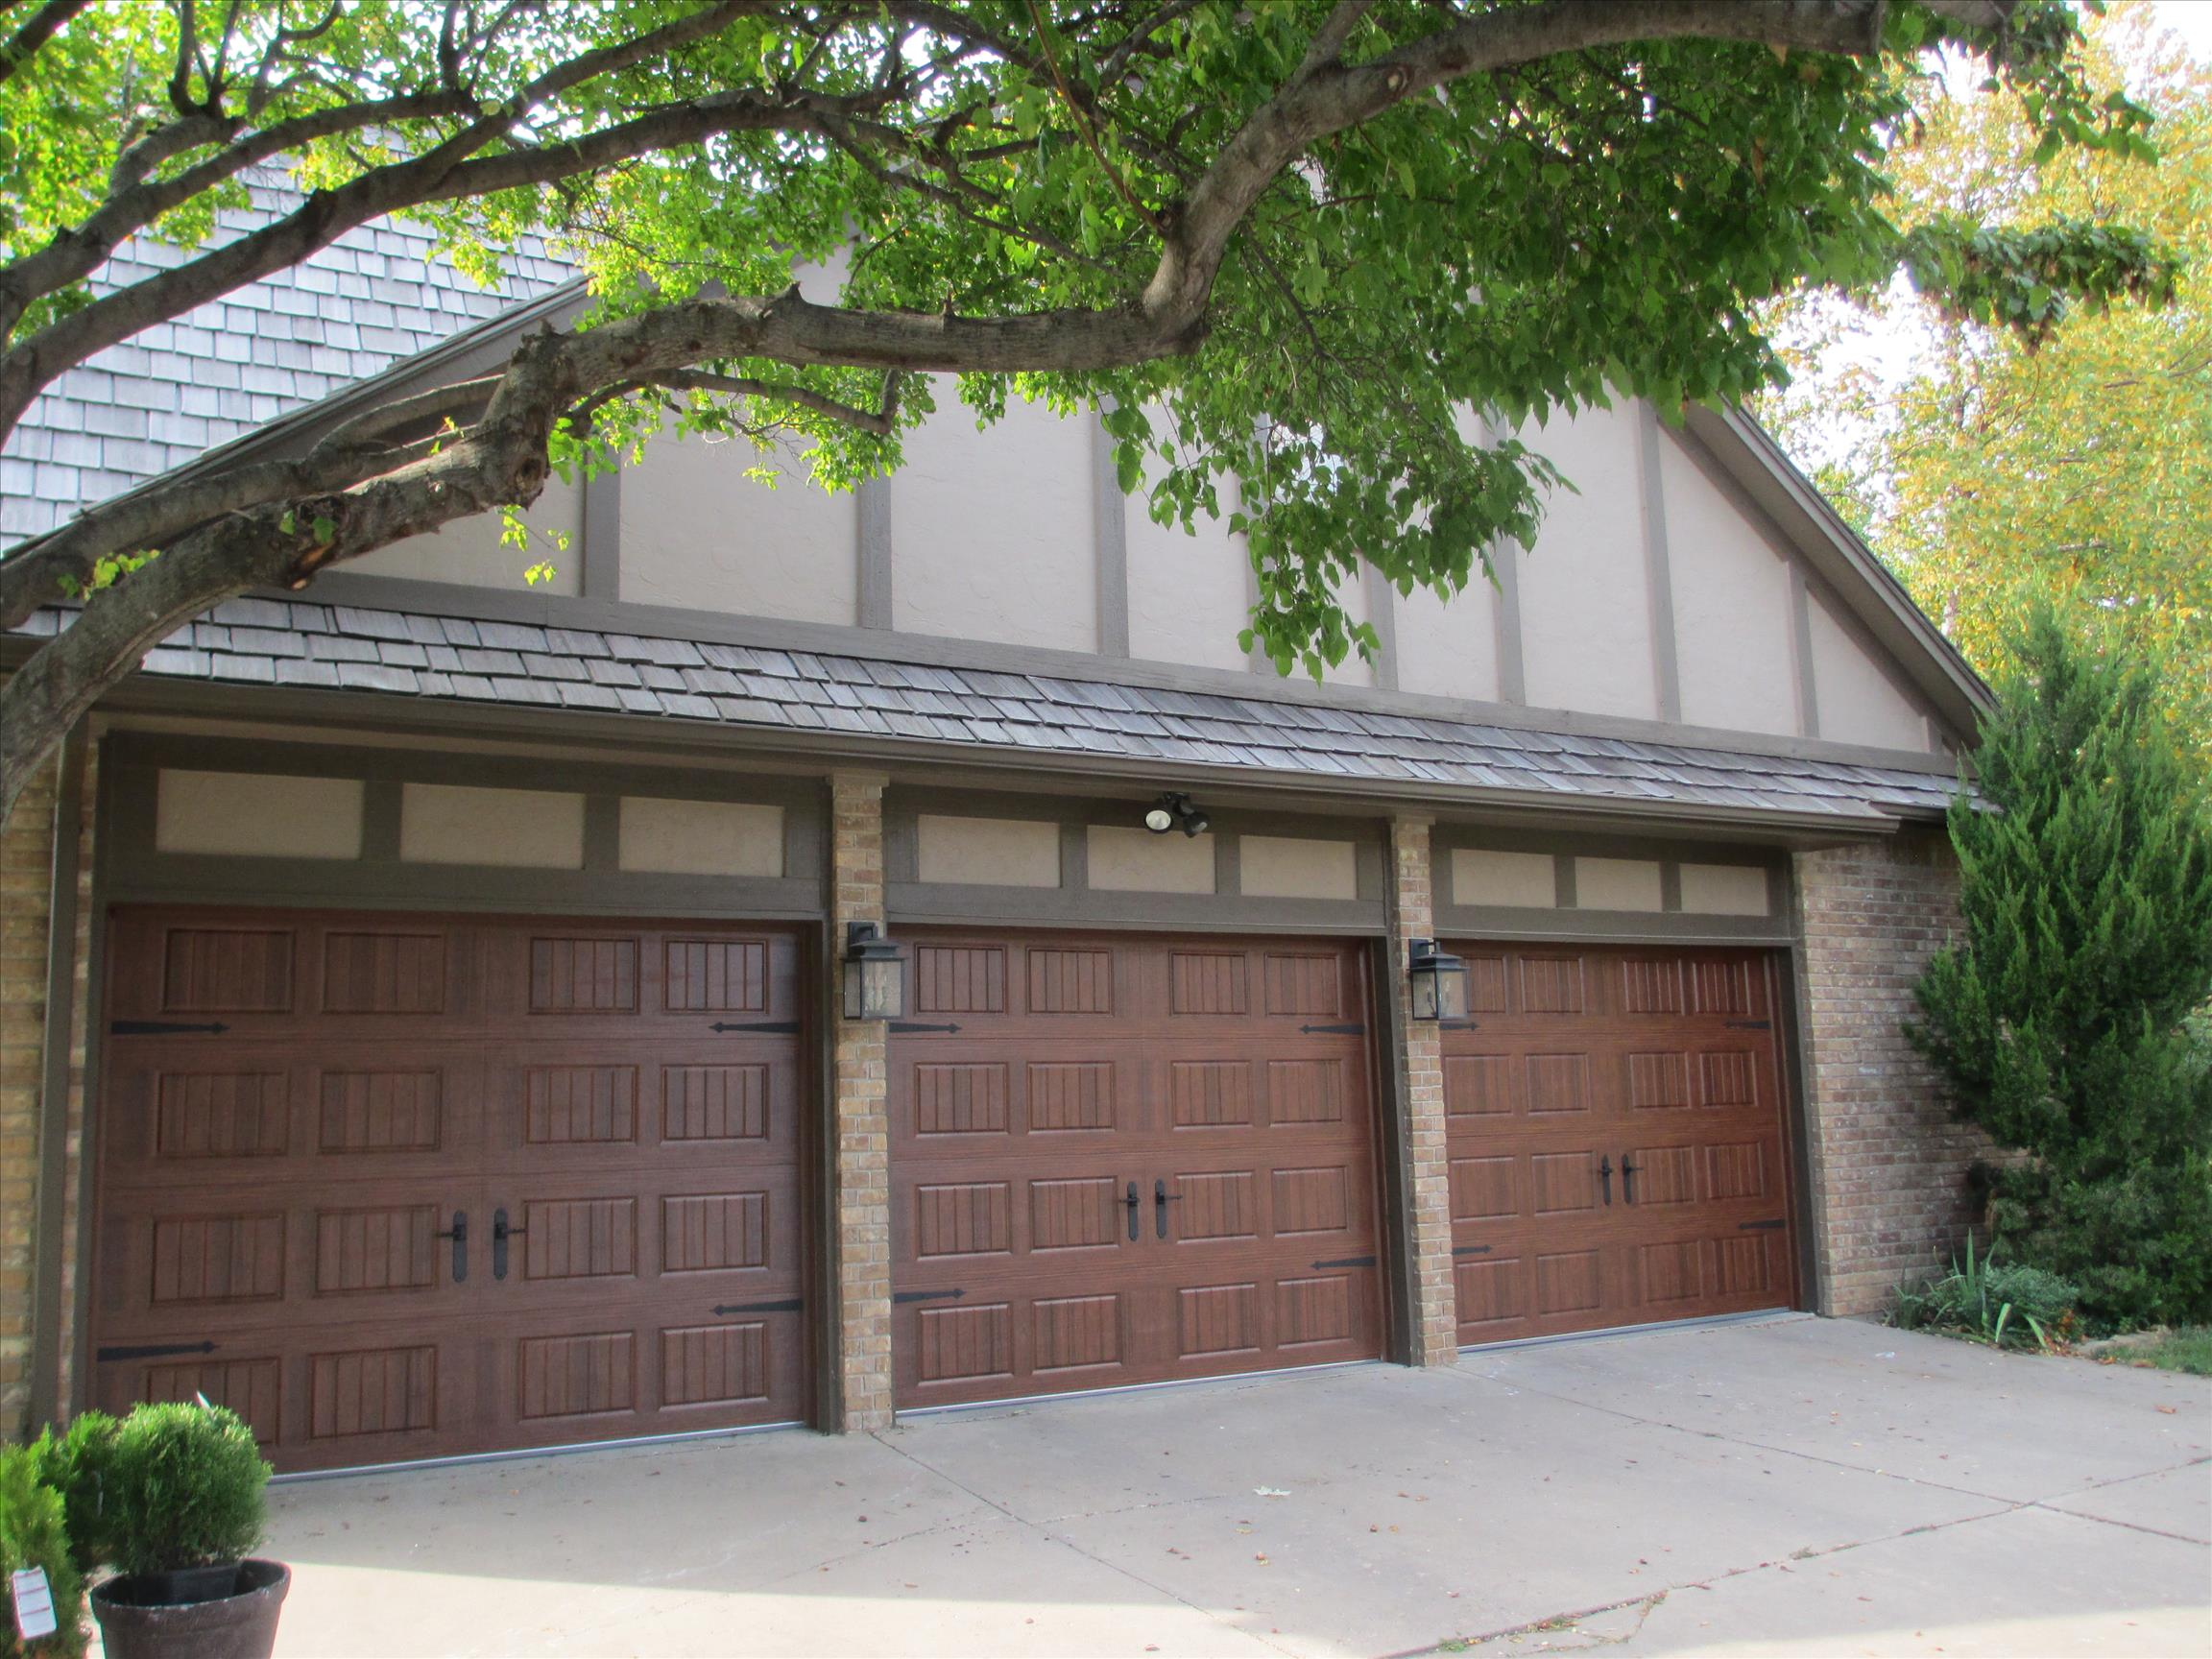 3 car garage with custom garage doors